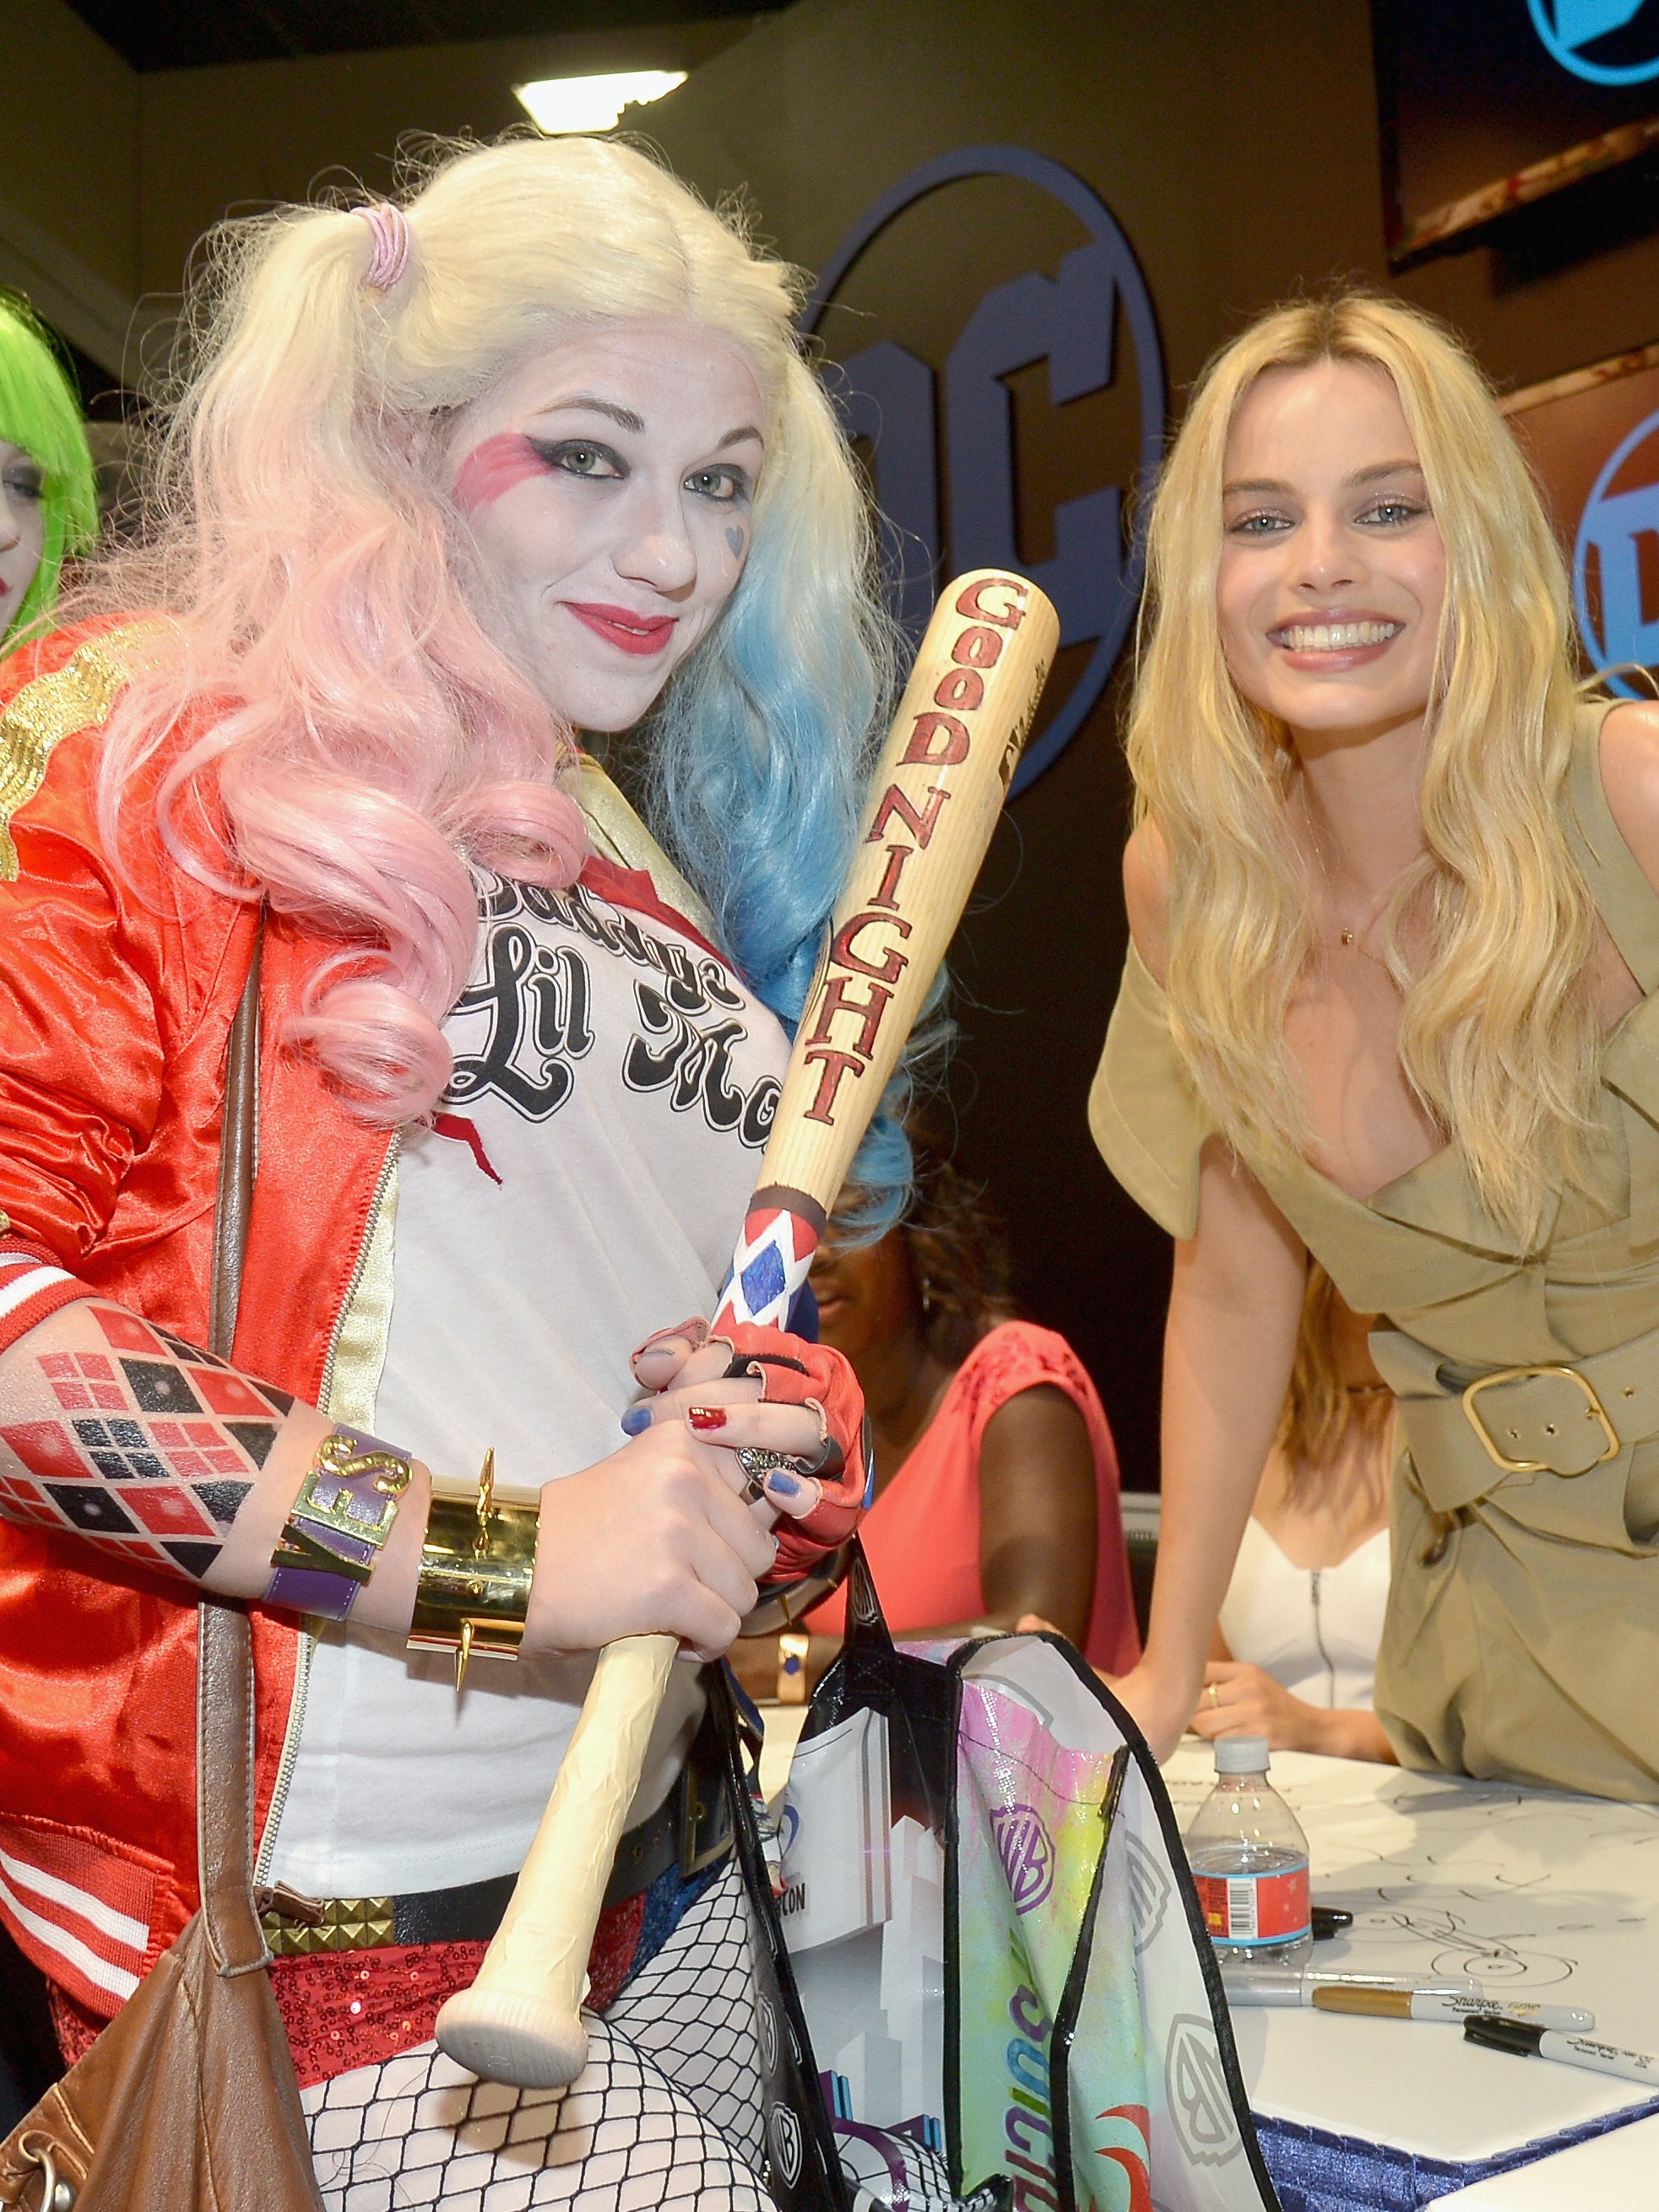 SAN DIEGO, CA - JULY 23:  Actress Margot Robbie (R) from the cast of Suicide Squad film poses with a cosplayer in DC's 2016 Comic-Con booth at San Diego Convention Center on July 23, 2016 in San Diego, California.  (Photo by Charley Gallay/Getty Images for DC Entertainment)